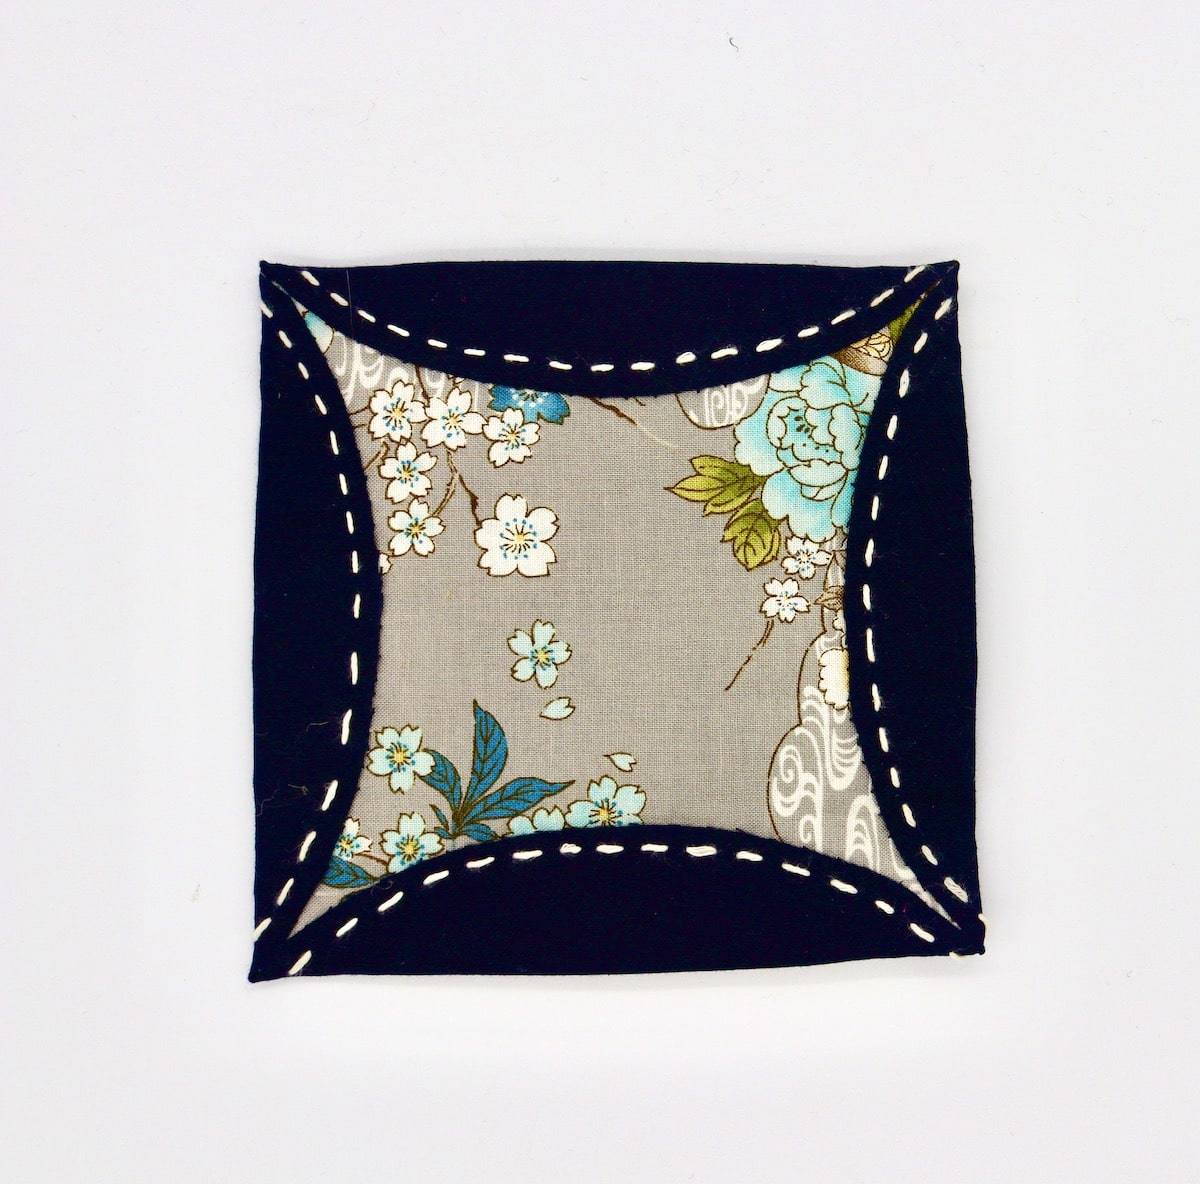 Kimono Floral Coaster  By Get Fired Up Art